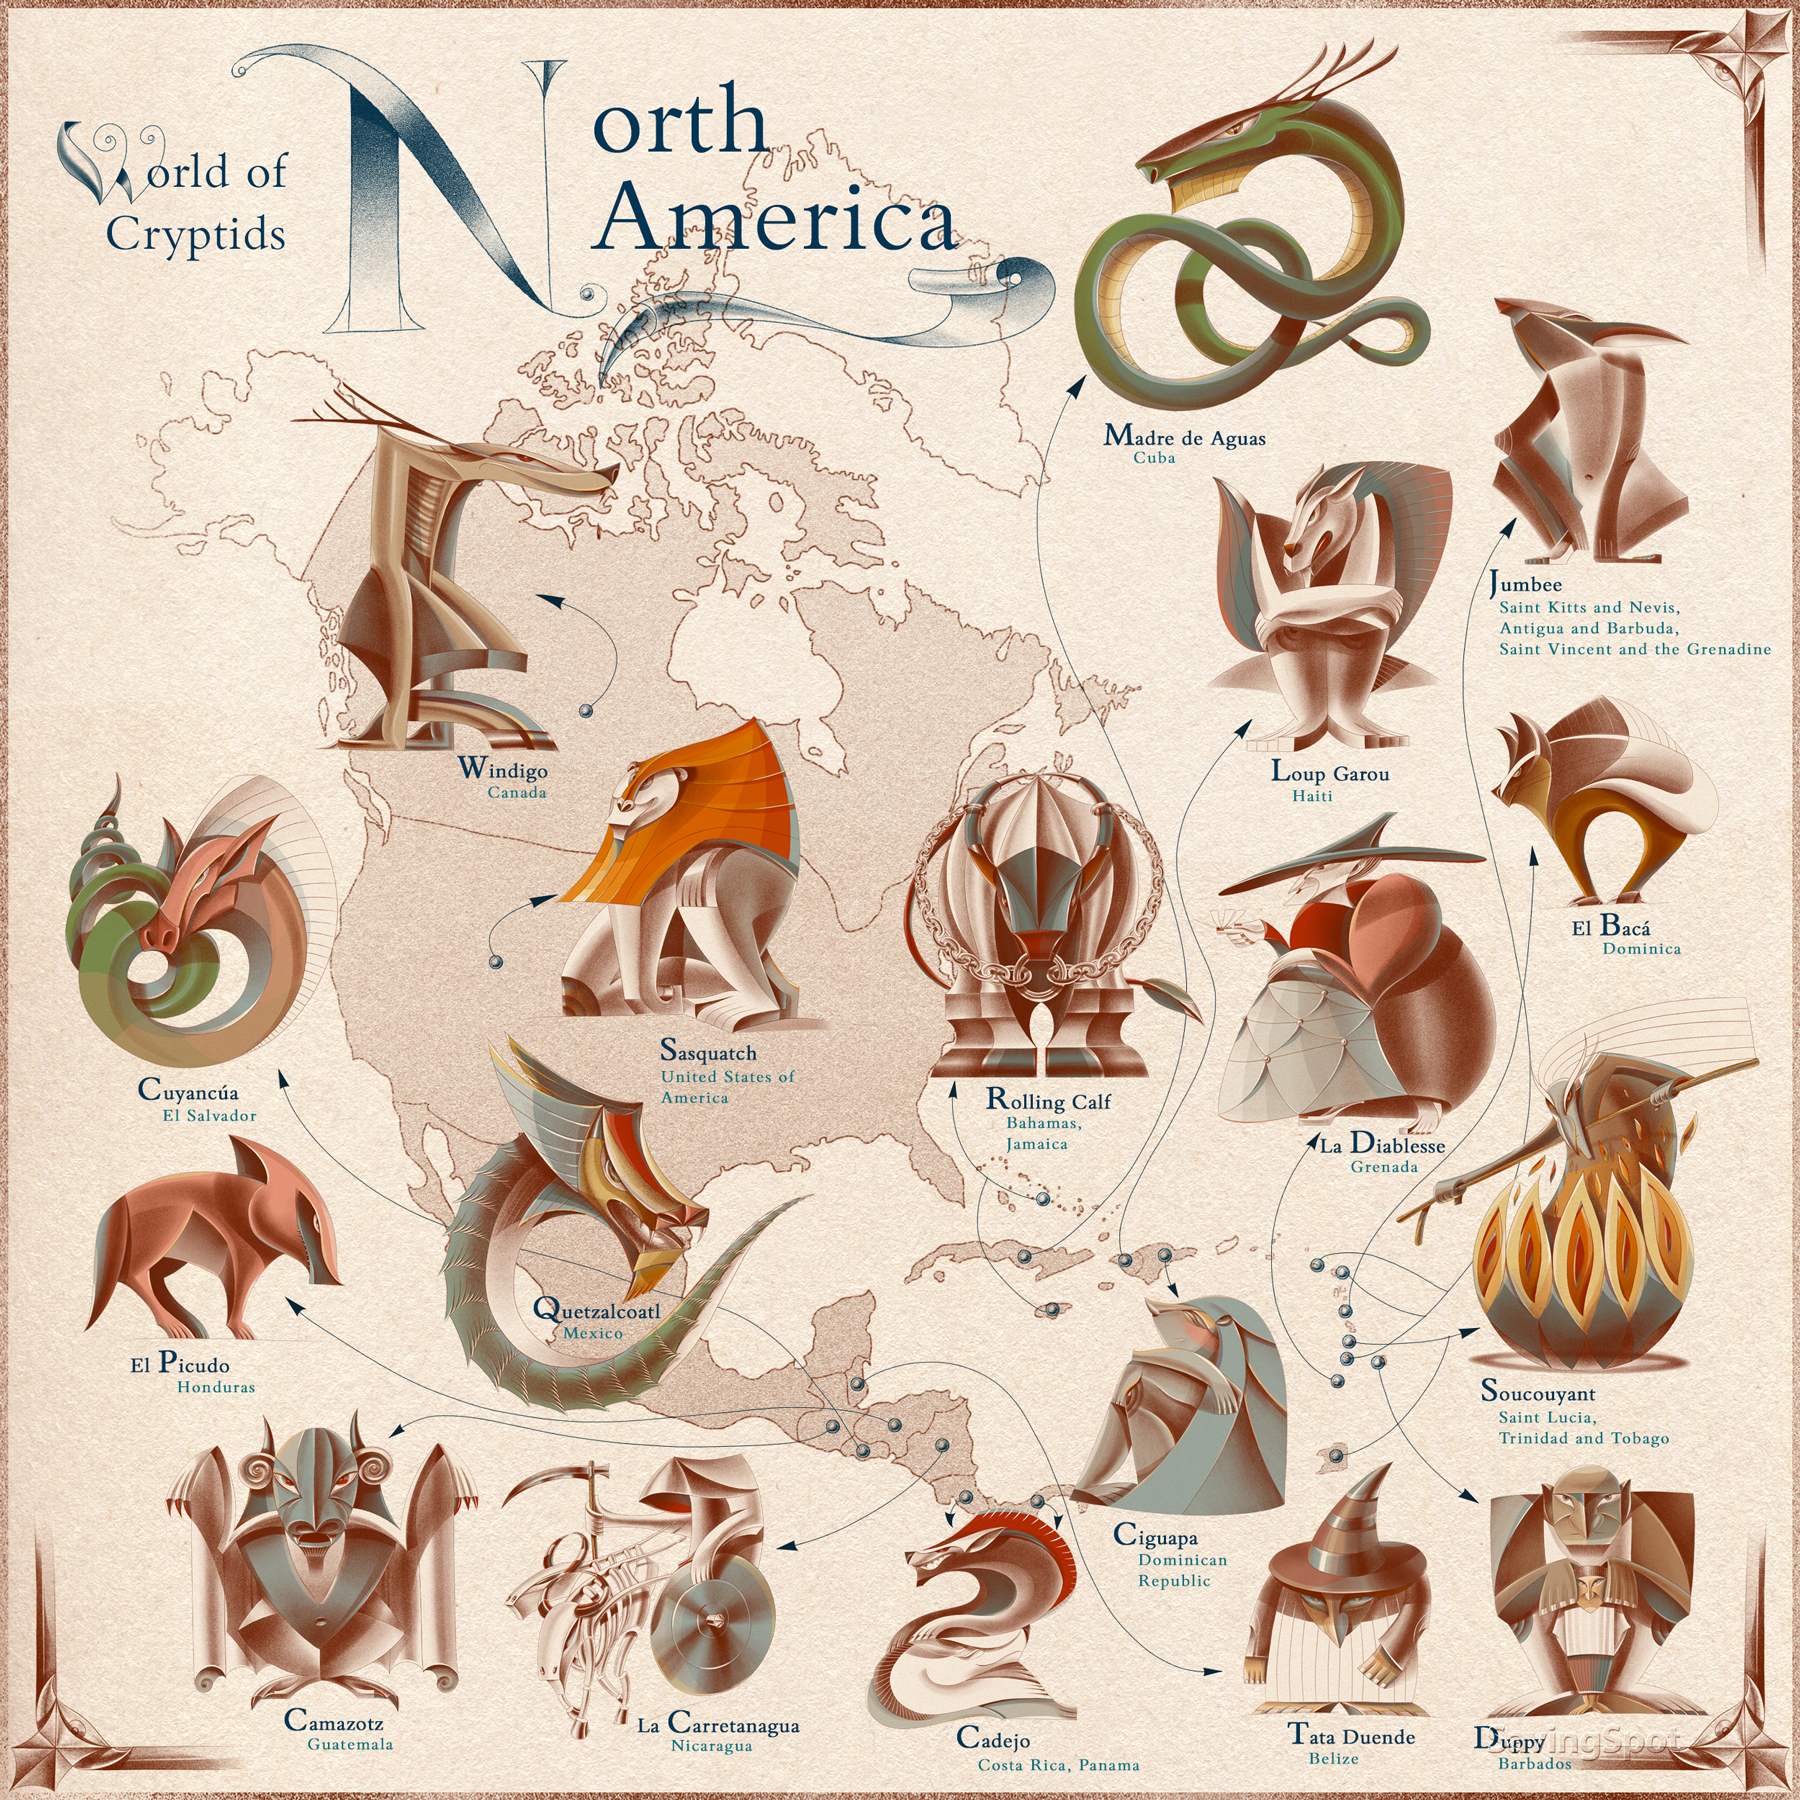 Illustrated map of mythical creatures in North America